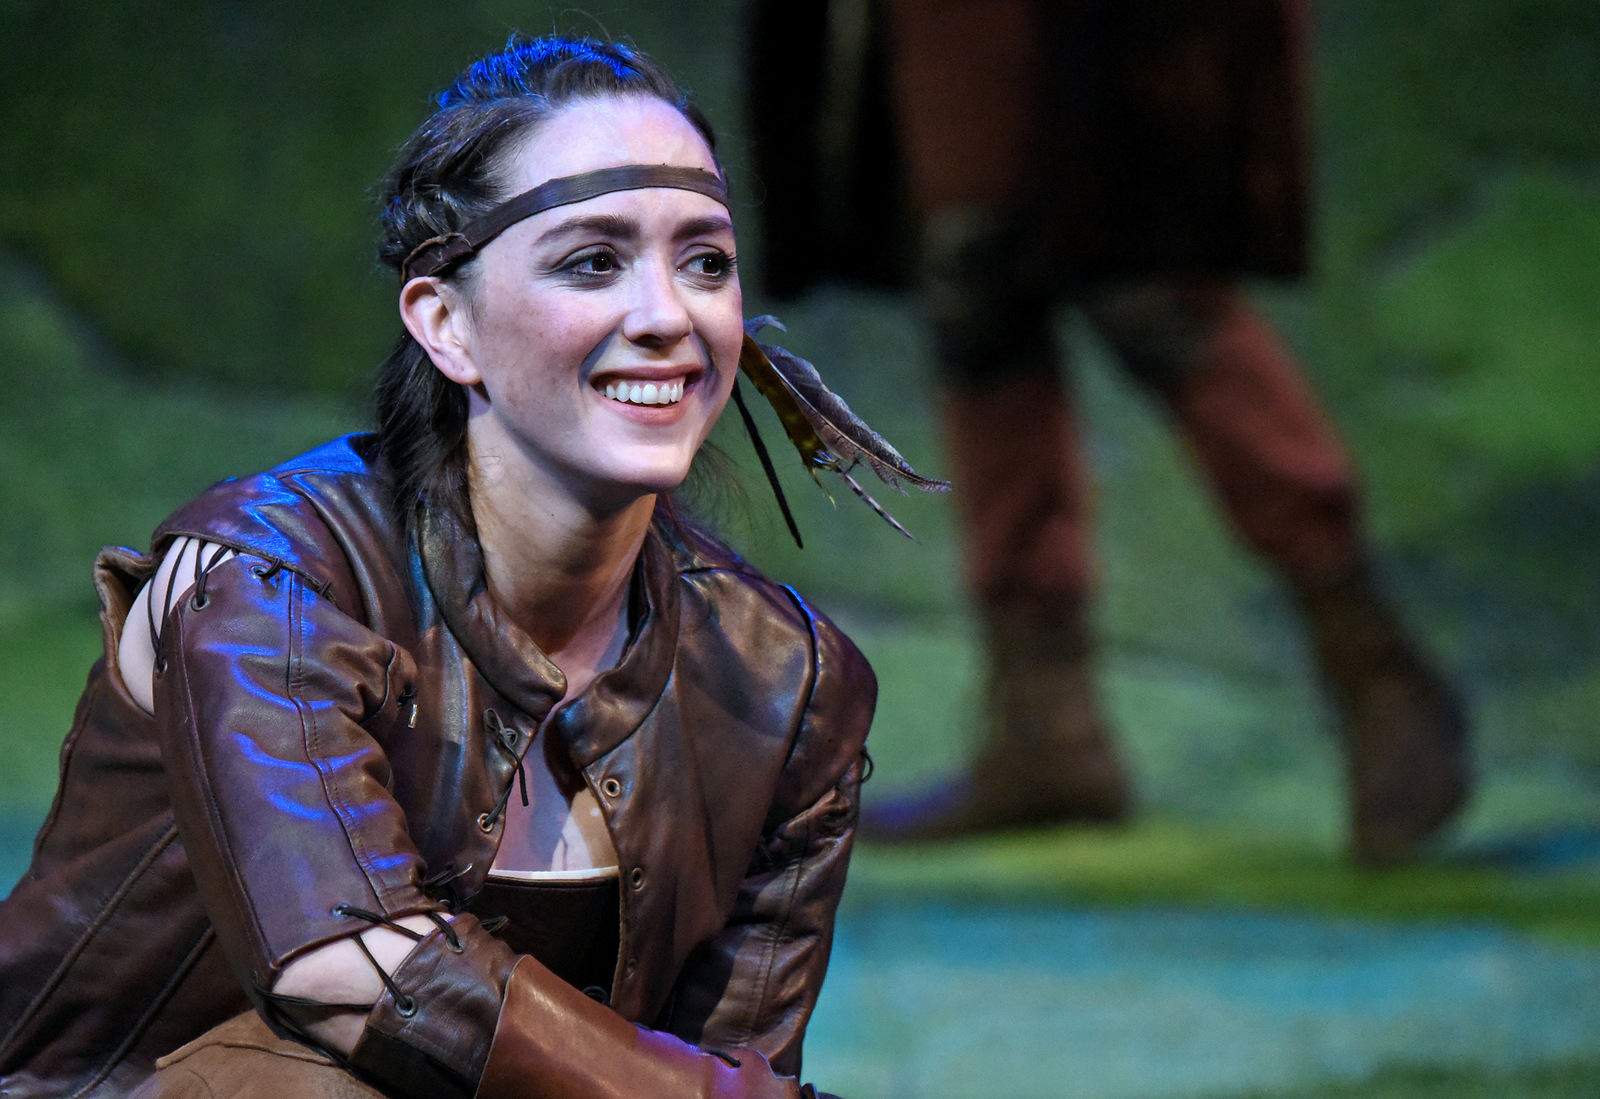 Vesturport and The Wallis' The Heart of Robin Hood. Pictured (l-r): Christina Bennett Lind. Photo credit: Kevin Parry for The Wallis.